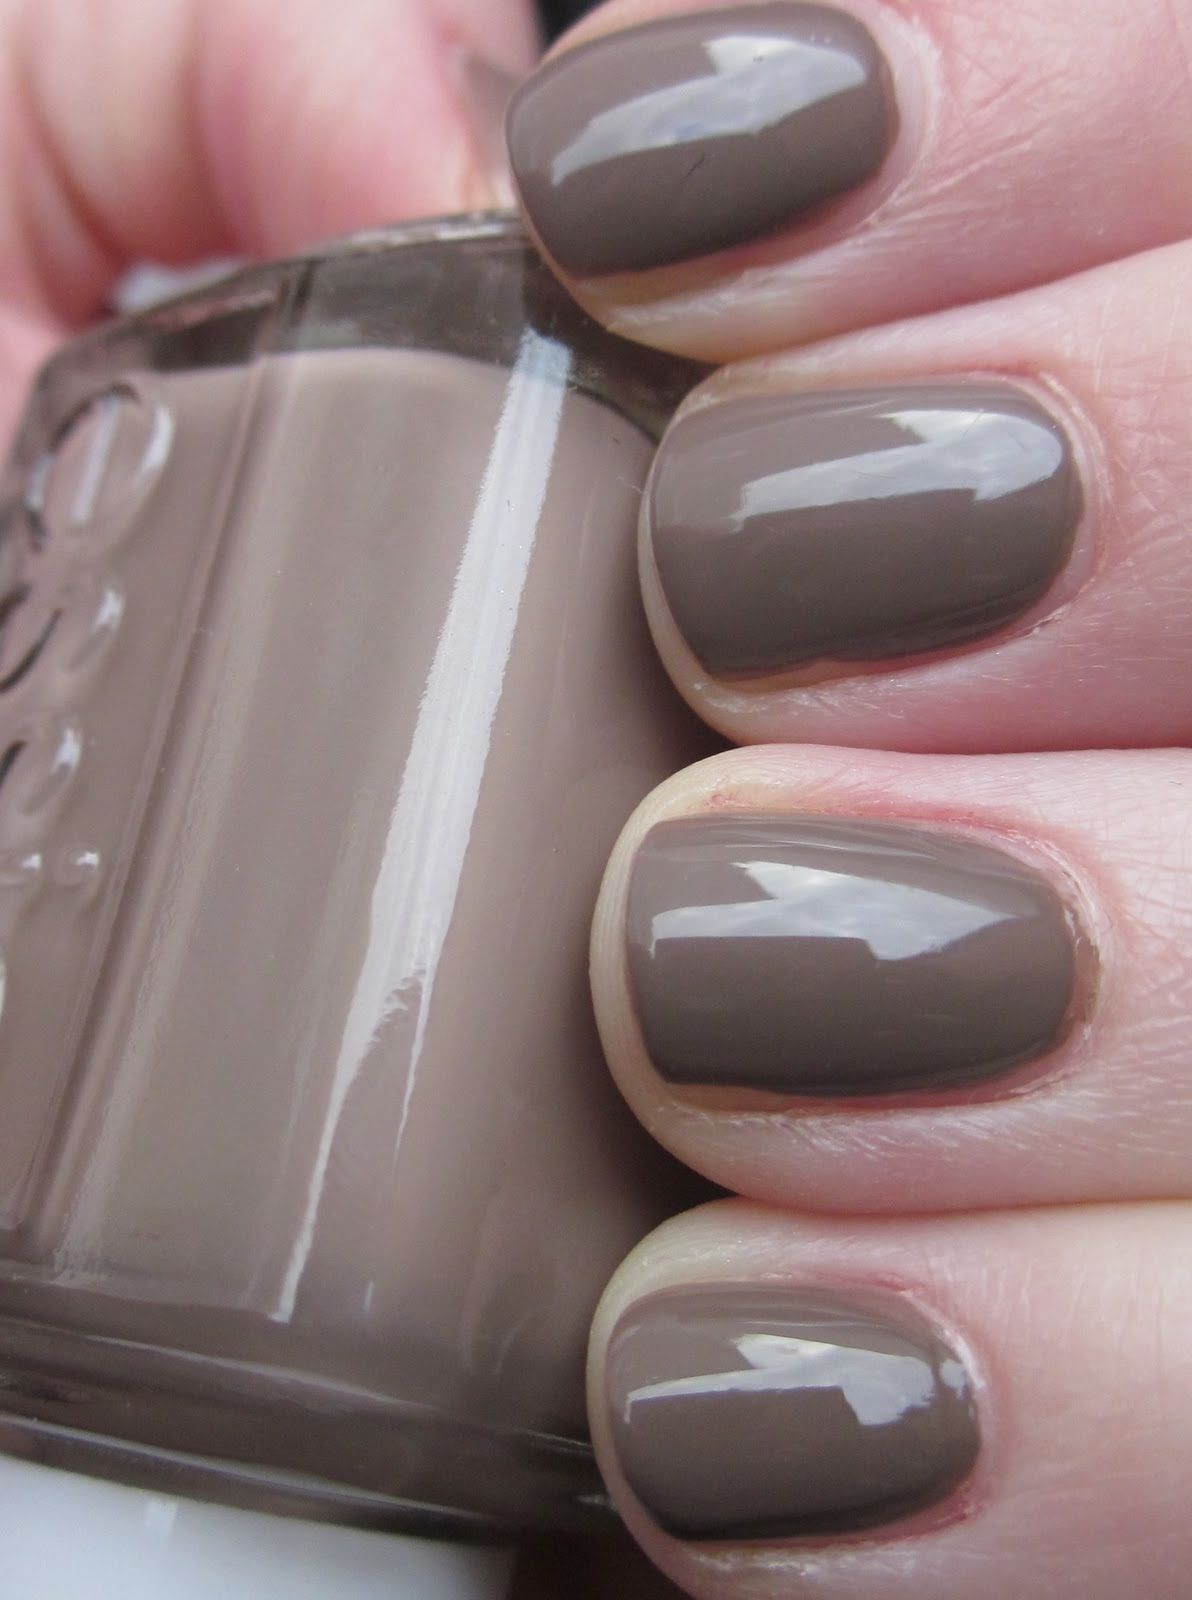 Taupe Finger Nail Polish Fall 2013   My Style   Pinterest   Taupe ...